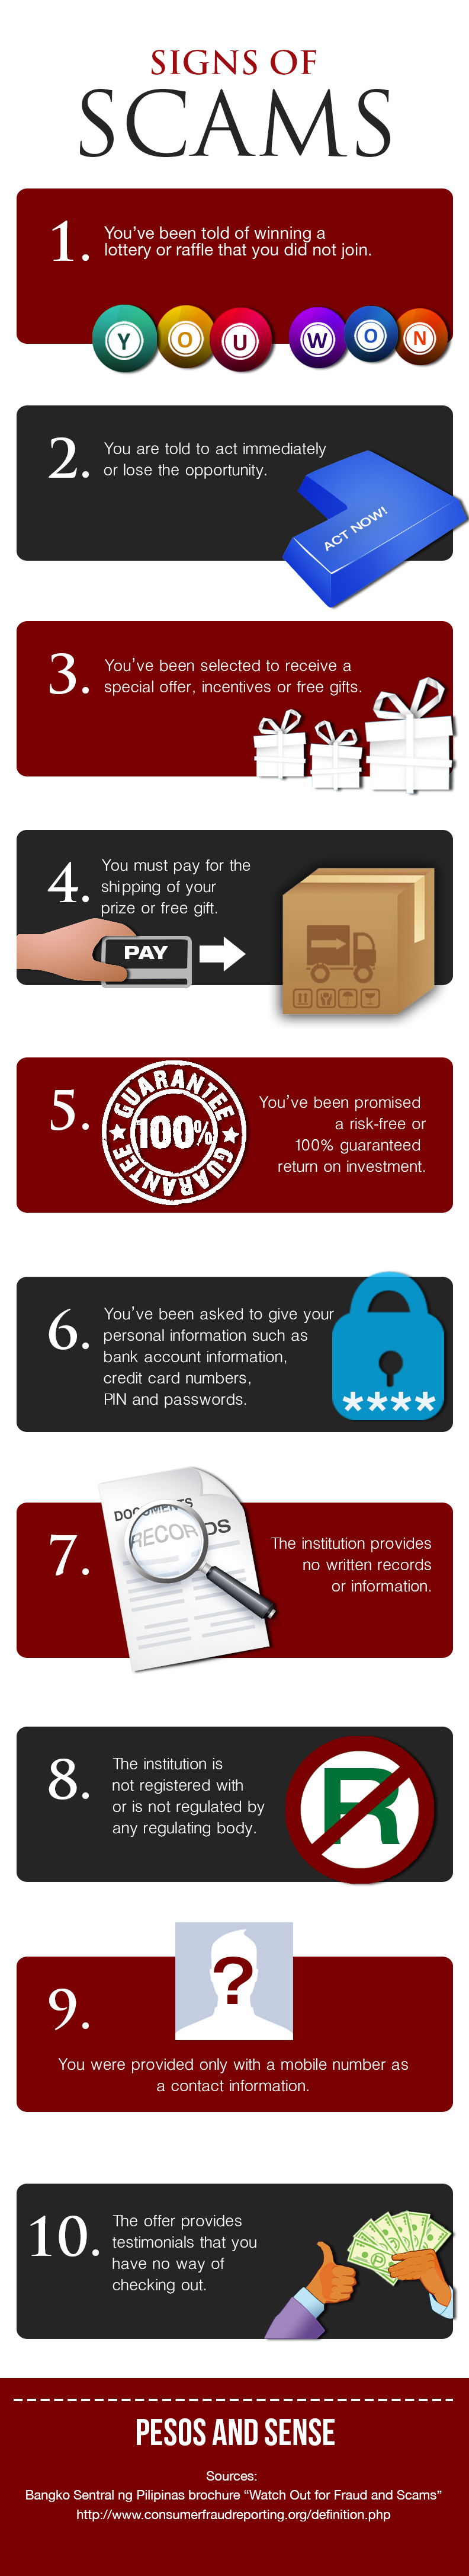 SCAMS infographic